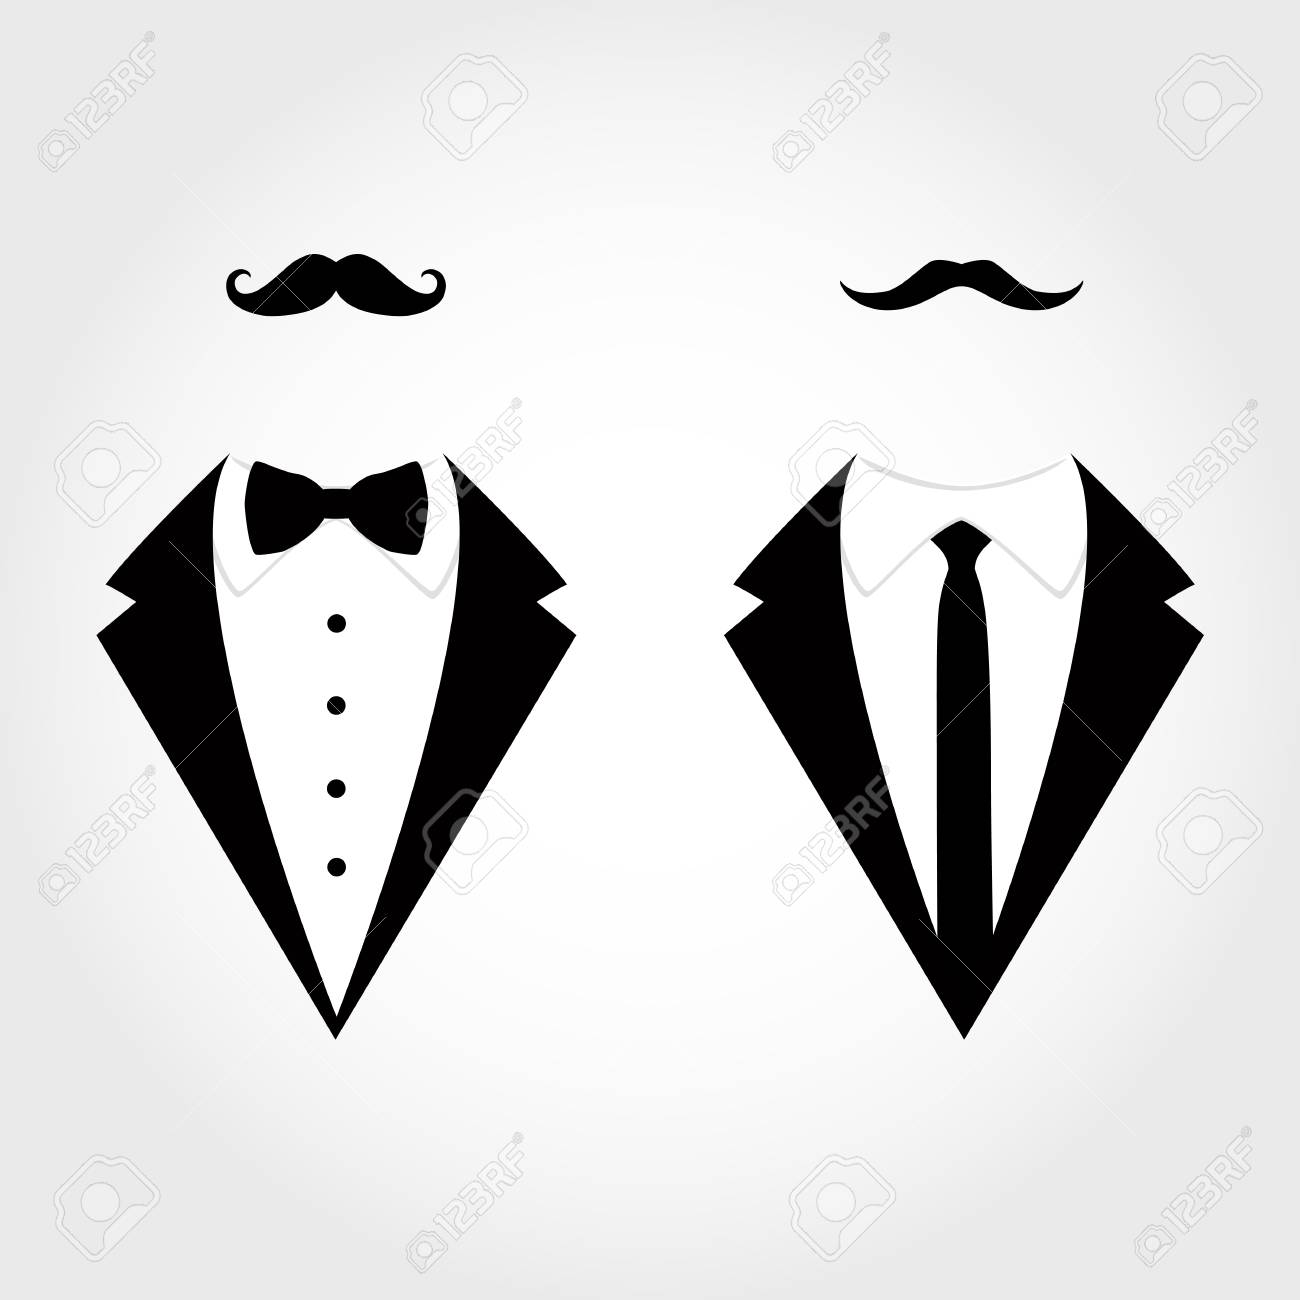 Suit icon isolated on white background. Gentleman icon. Vector..